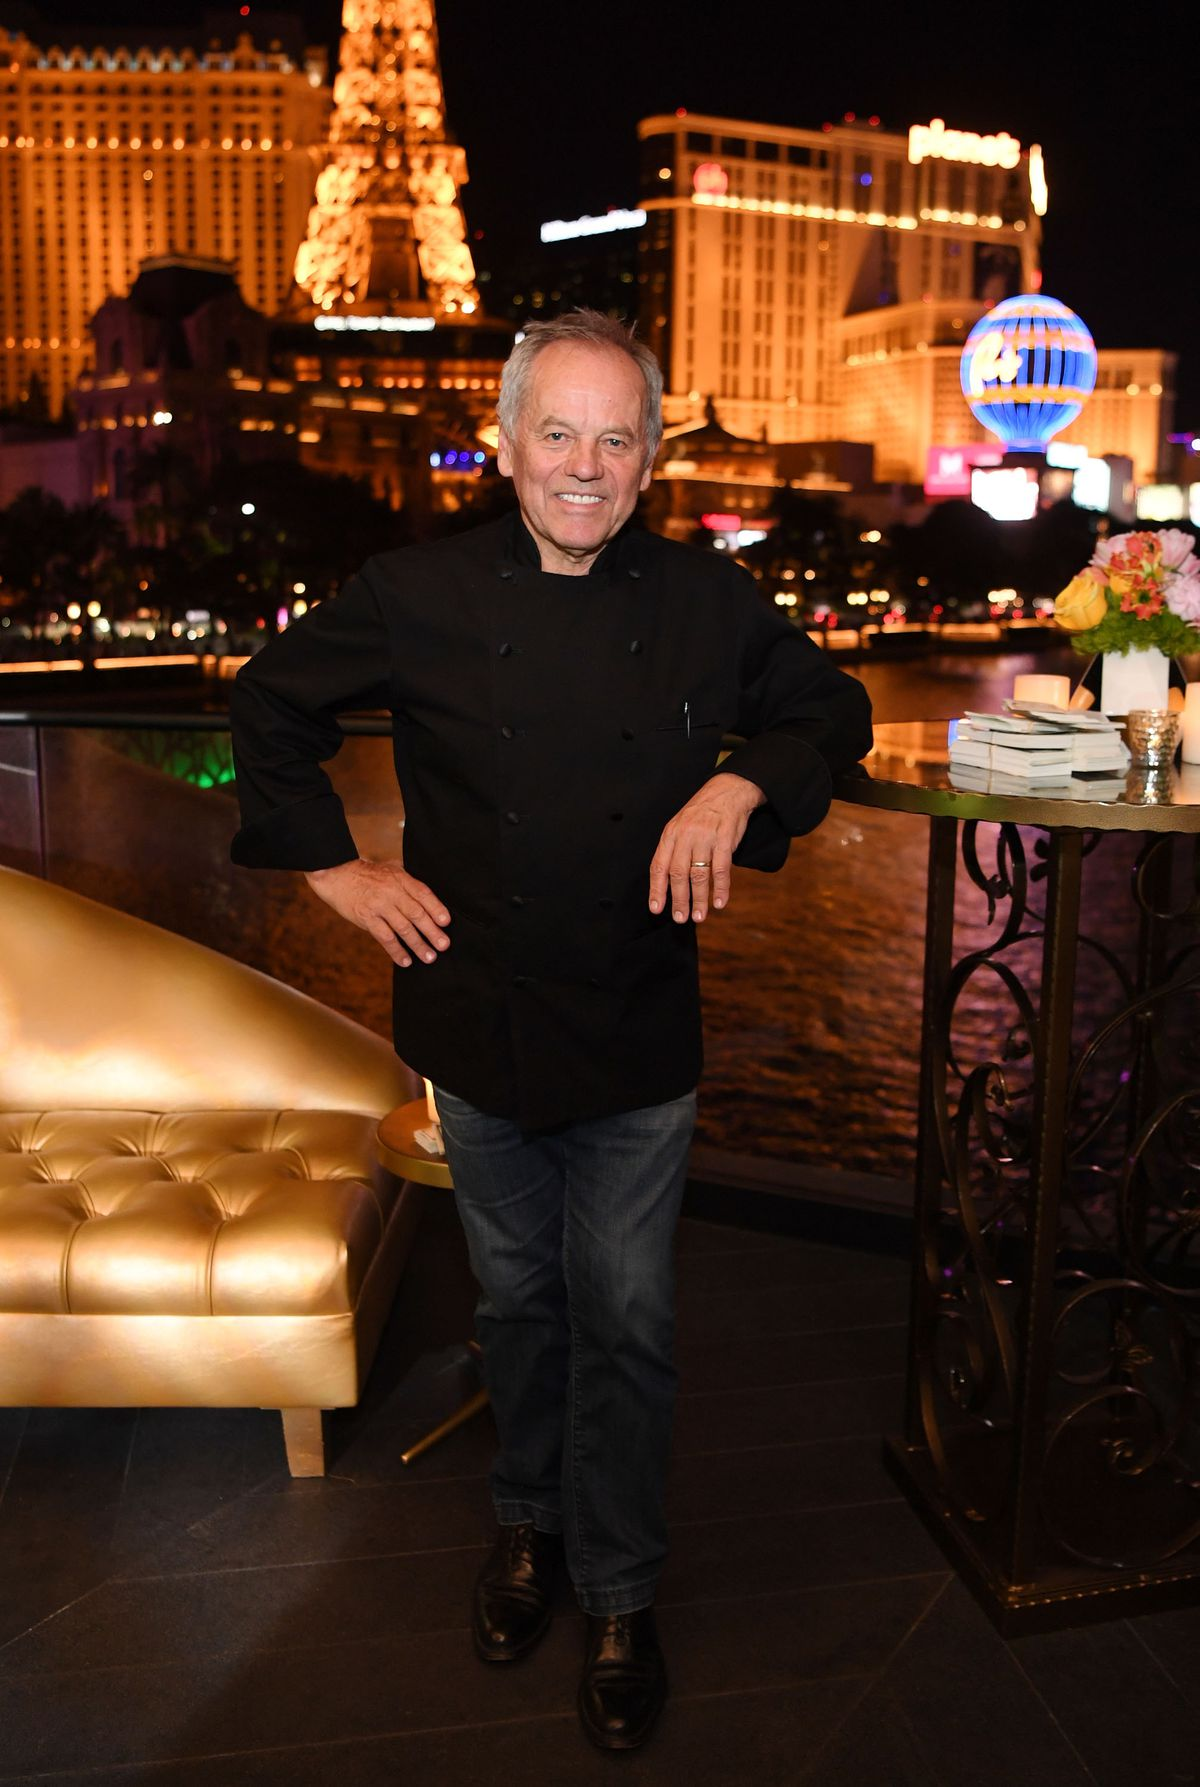 Wolfgang Puck on the patio of his new location of Spago at the Bellagio